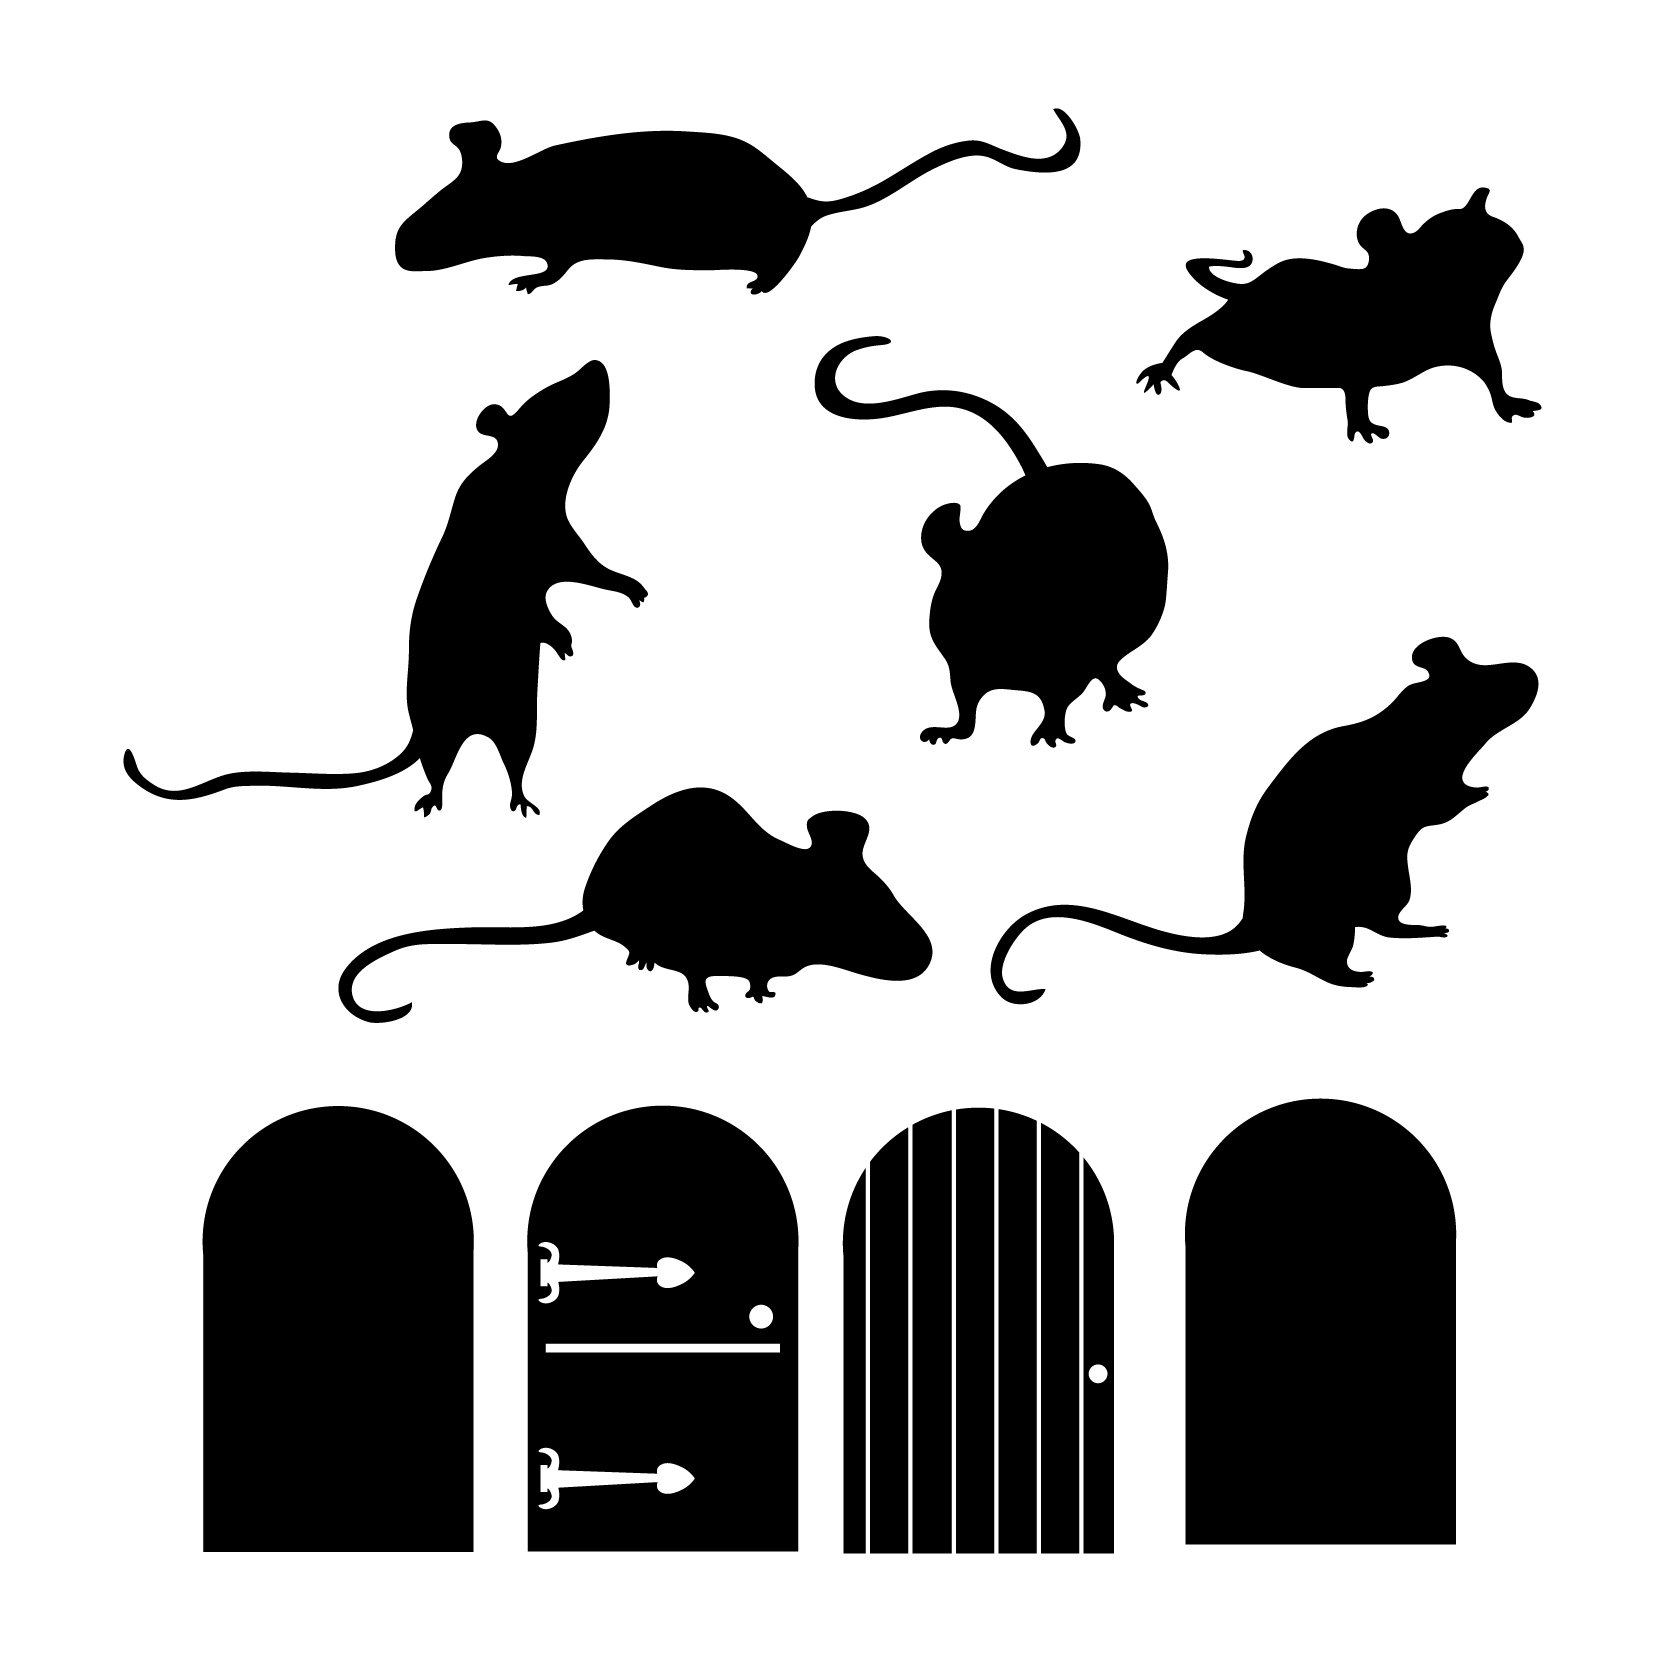 Mice and Doors - Vinyl Wall Art Decal for Homes, Offices, Kids Rooms, Nurseries, Schools, High Schools, Colleges, Universities, Interior Designers, Architects, Remodelers